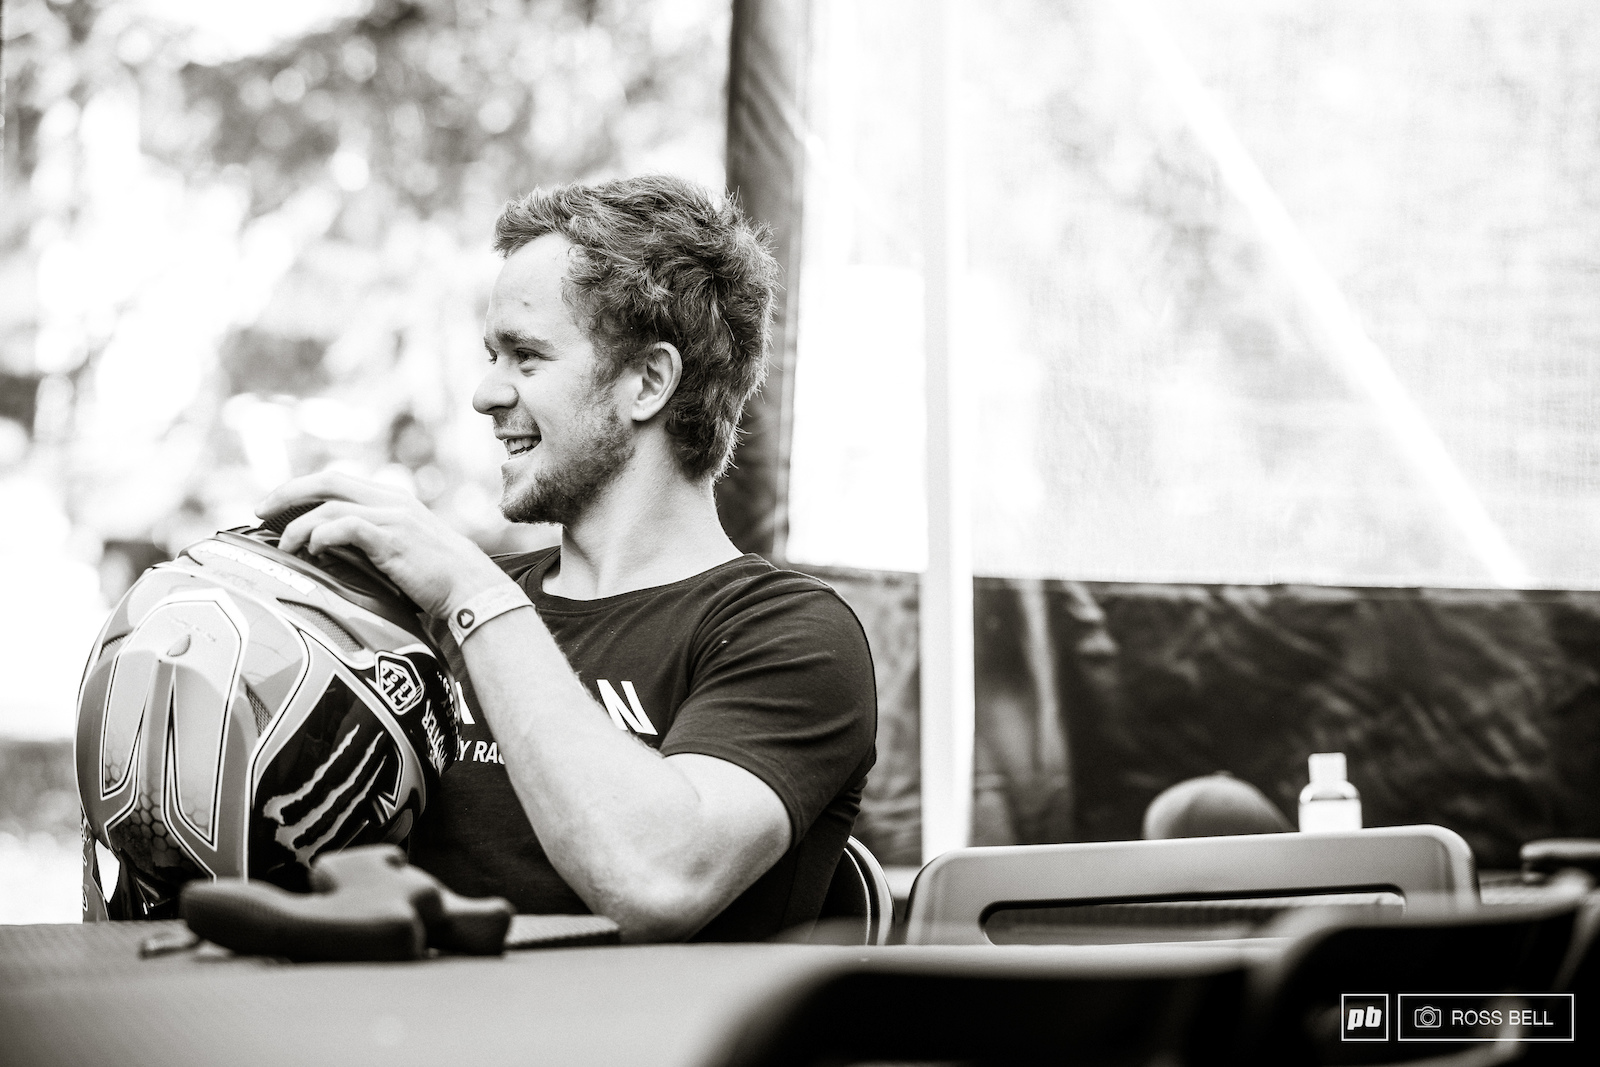 All smiles for Troy this morning before laying down a scorcher into the fastest time today.